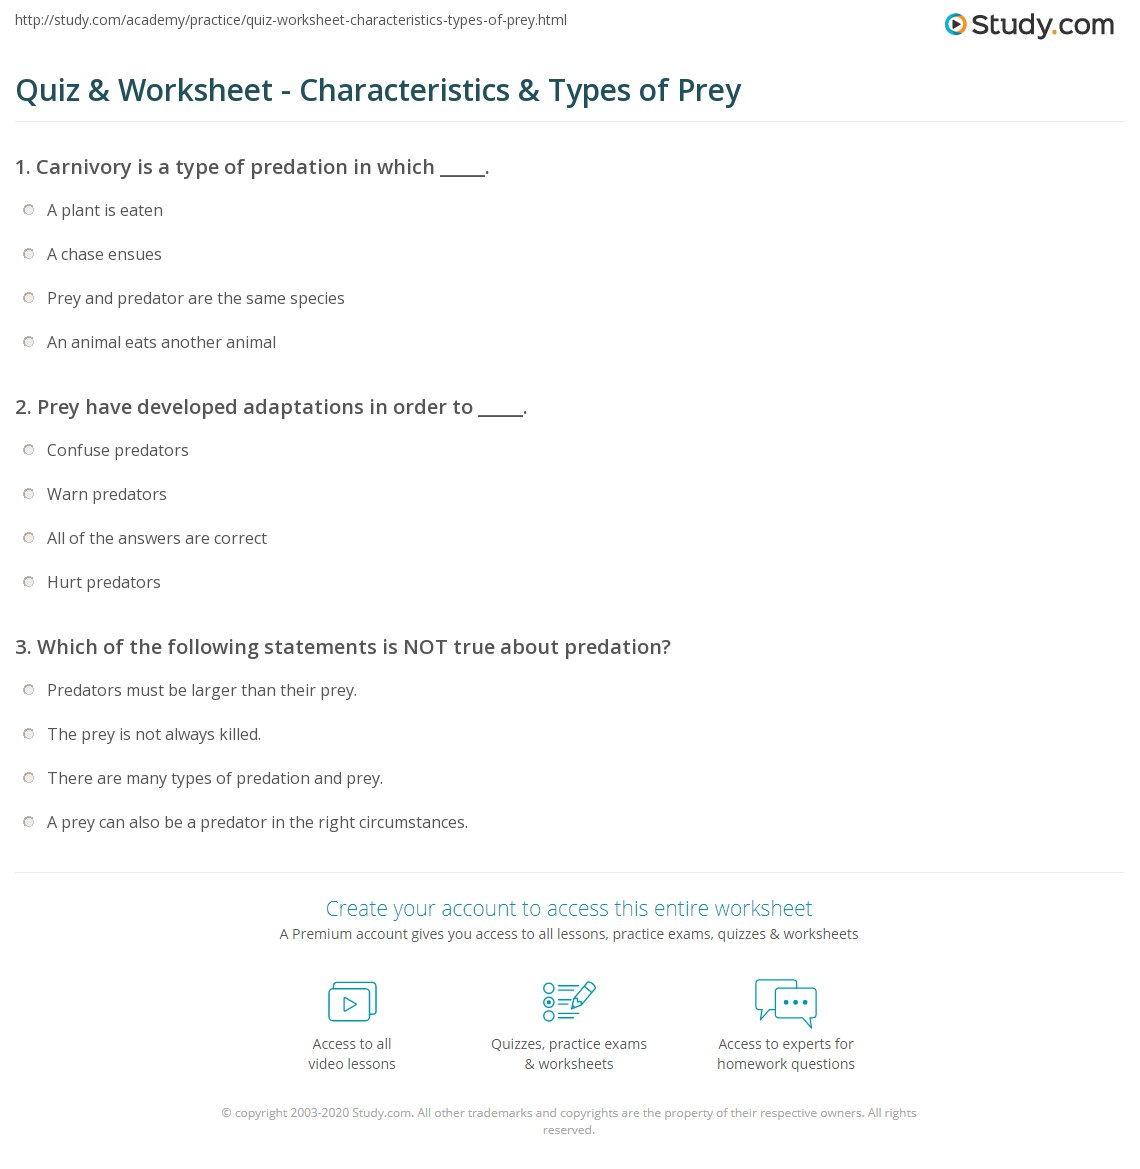 quiz worksheet characteristics types of prey. Black Bedroom Furniture Sets. Home Design Ideas